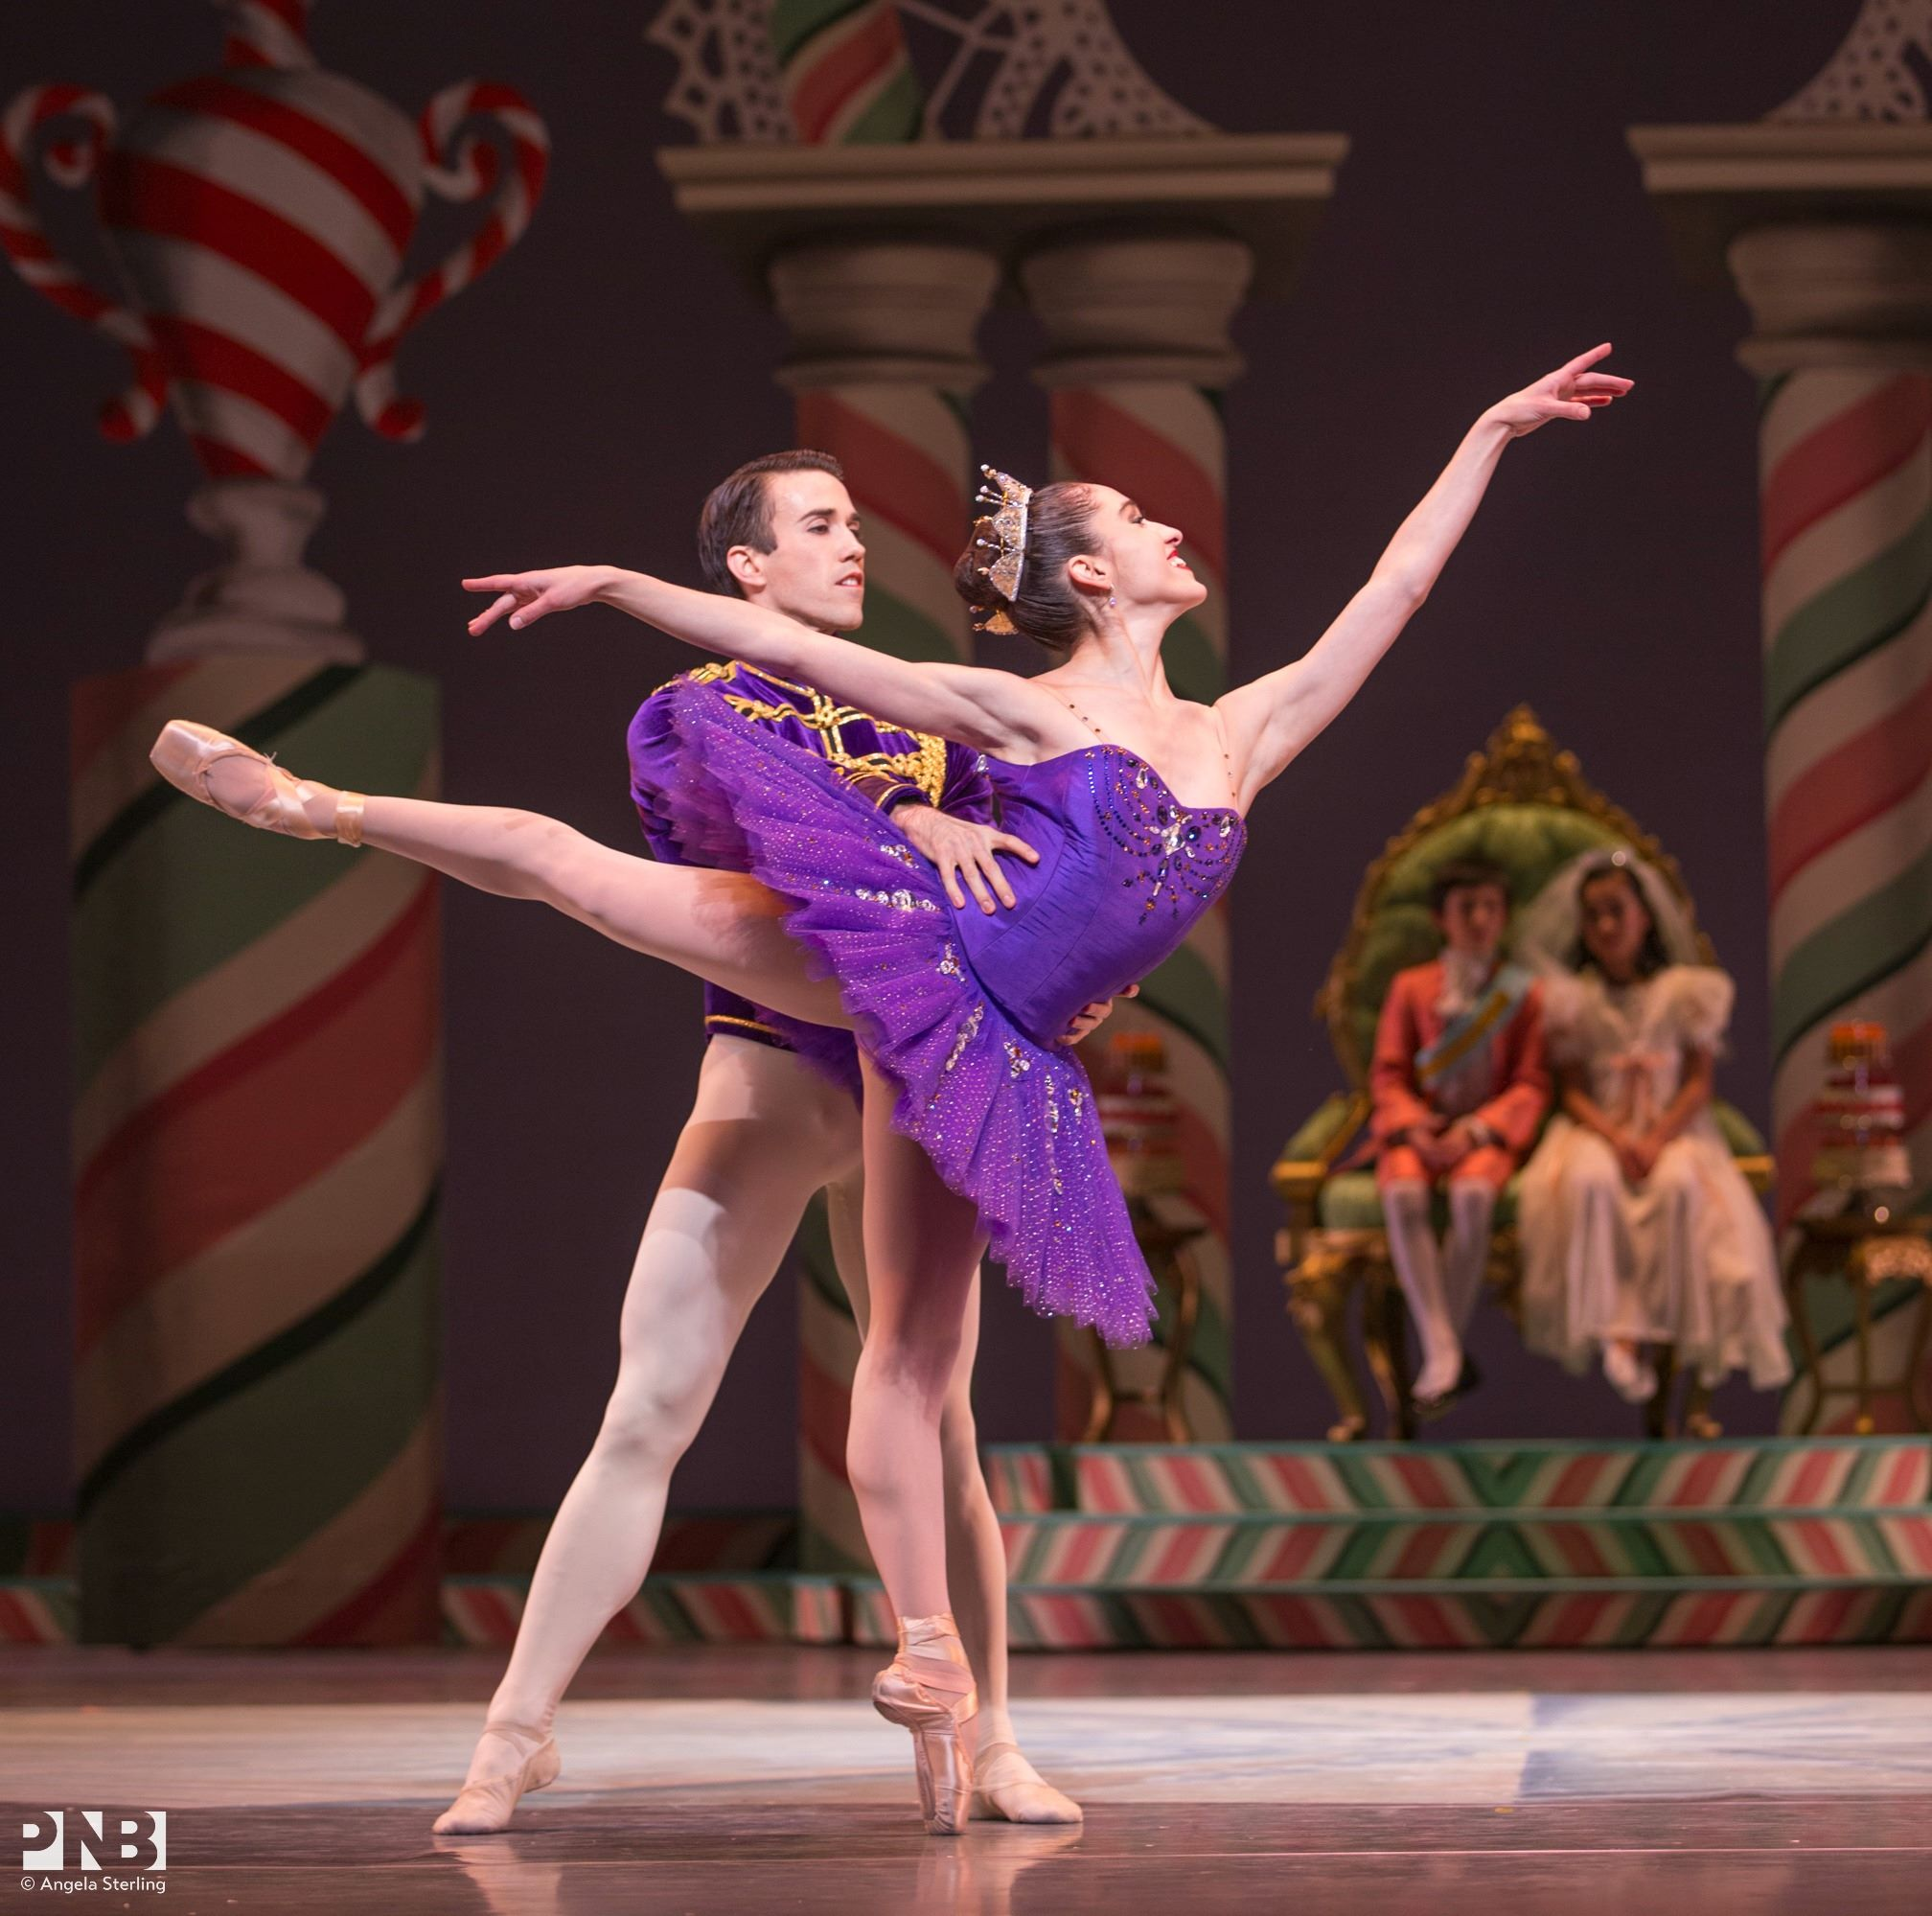 Benjamin Griffiths and Leta Biasucci in George Balanchine/Ian Falconer's The Nutcracker. Photo by Angela Sterling.